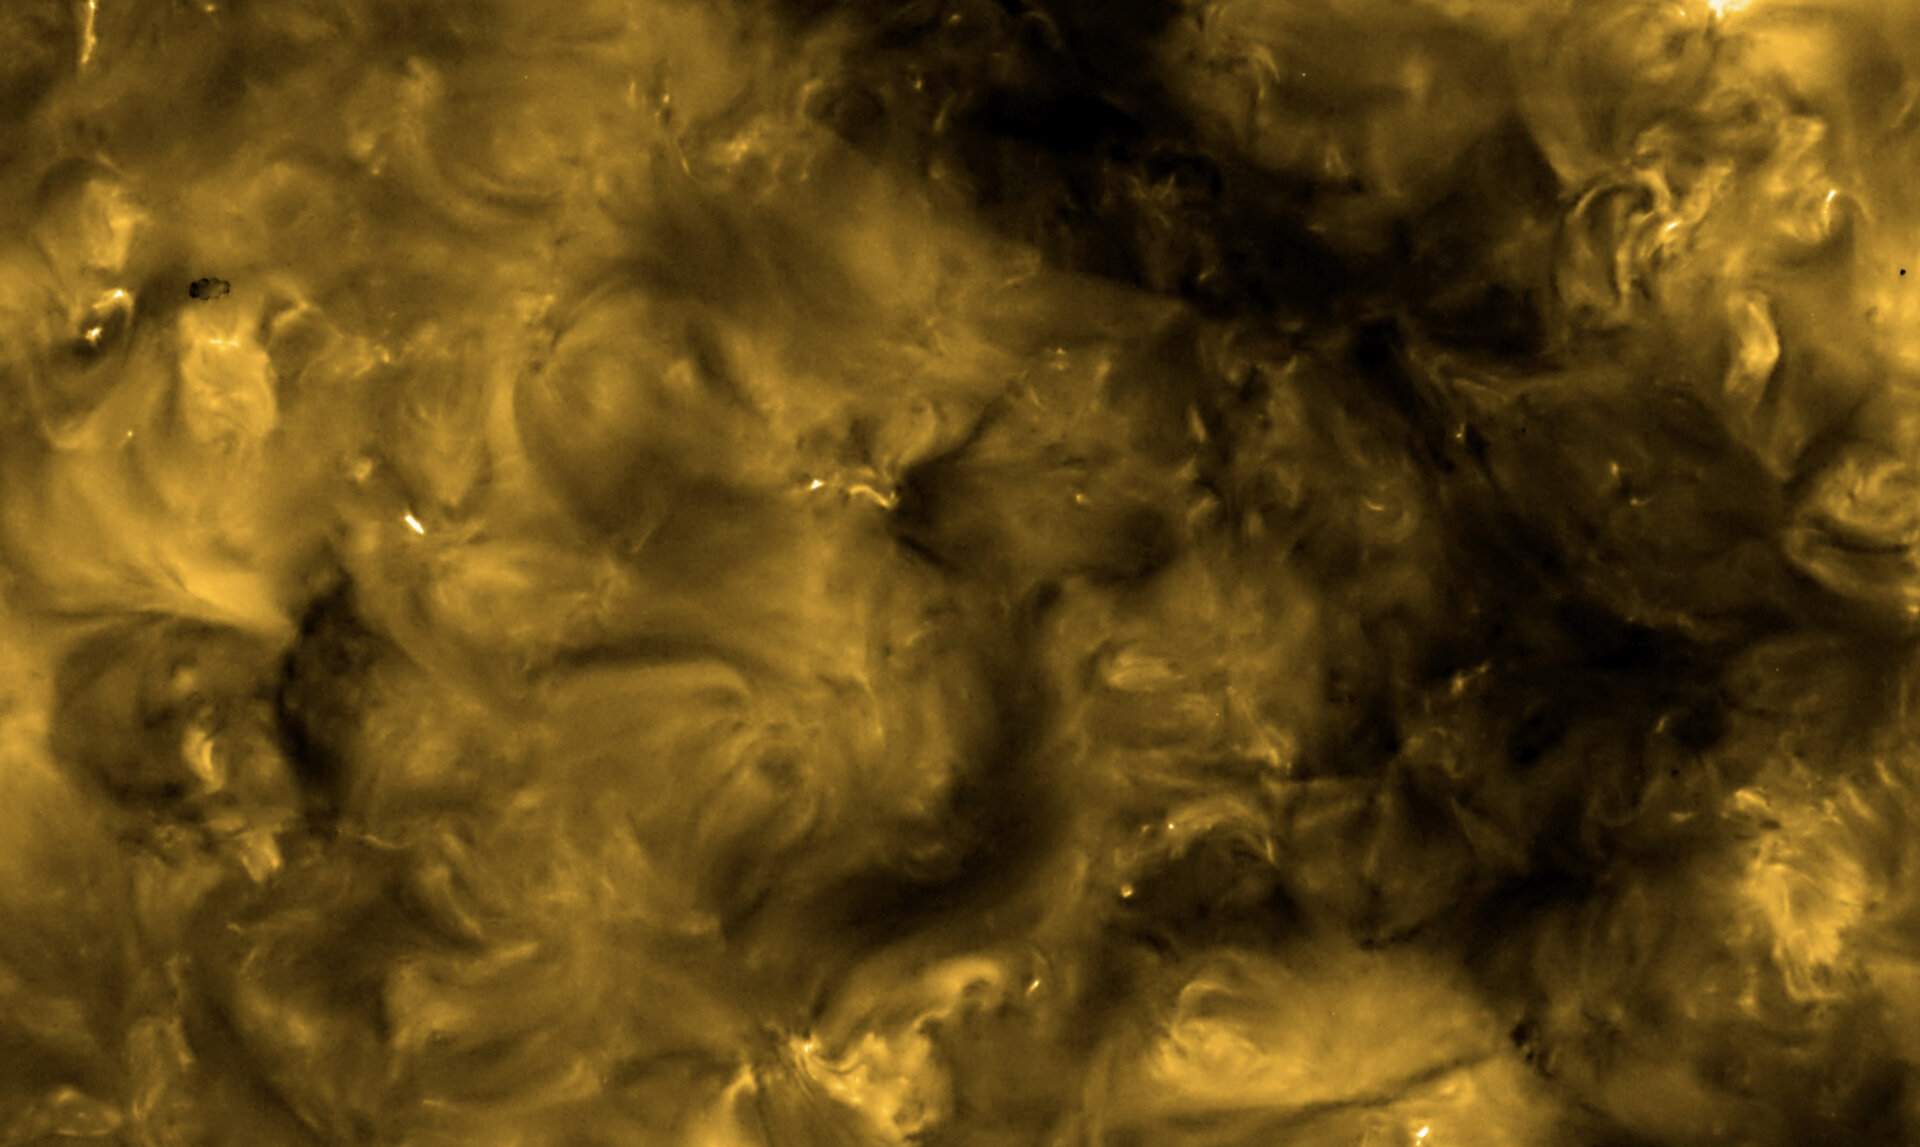 The Extreme Ultraviolet Imager (EUI) on ESA's Solar Orbiter spacecraft took these images on 30 May 2020. They show the Sun's appearance at a wavelength of 17 nanometers, which is in the extreme ultraviolet region of the electromagnetic spectrum. Images at this wavelength reveal the upper atmosphere of the Sun, the corona, with a temperature of around 1 million degrees.